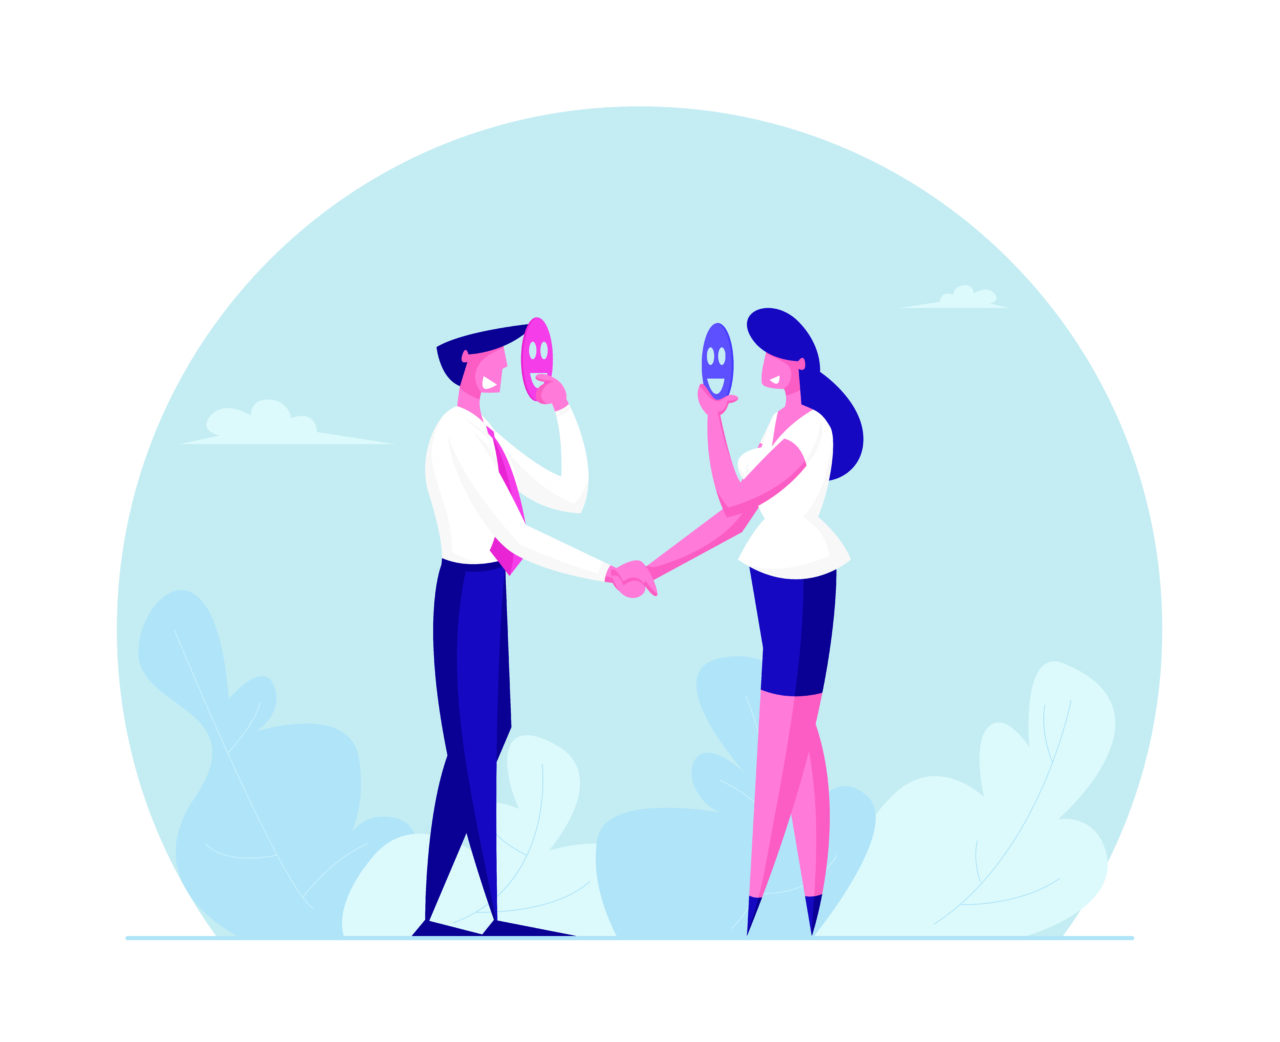 an illustrated image showing two people getting to know each other and reveal customers lies.